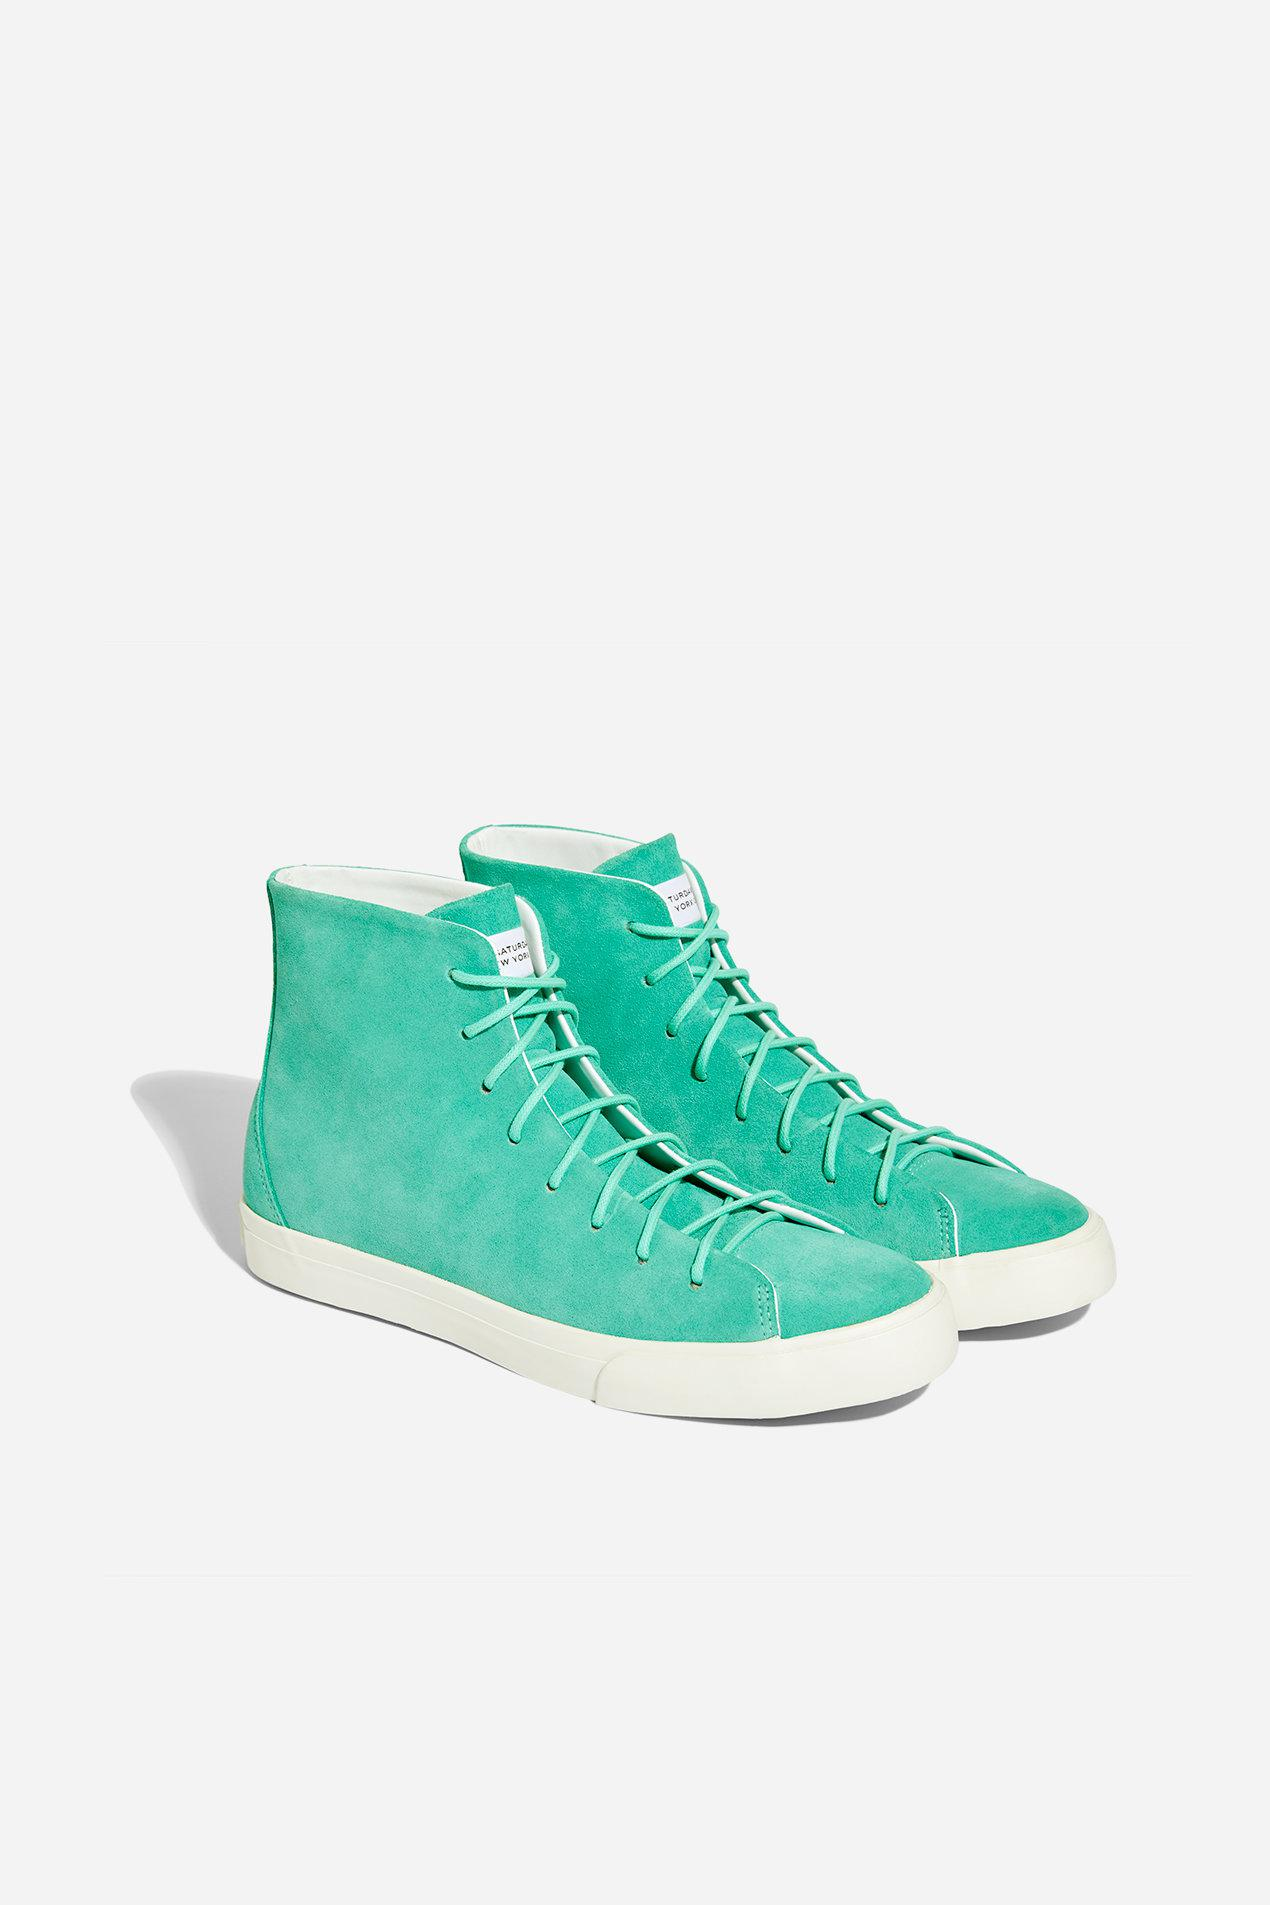 d57659d80b9 Lyst - Saturdays NYC Mike High Suede Sneaker in Green for Men